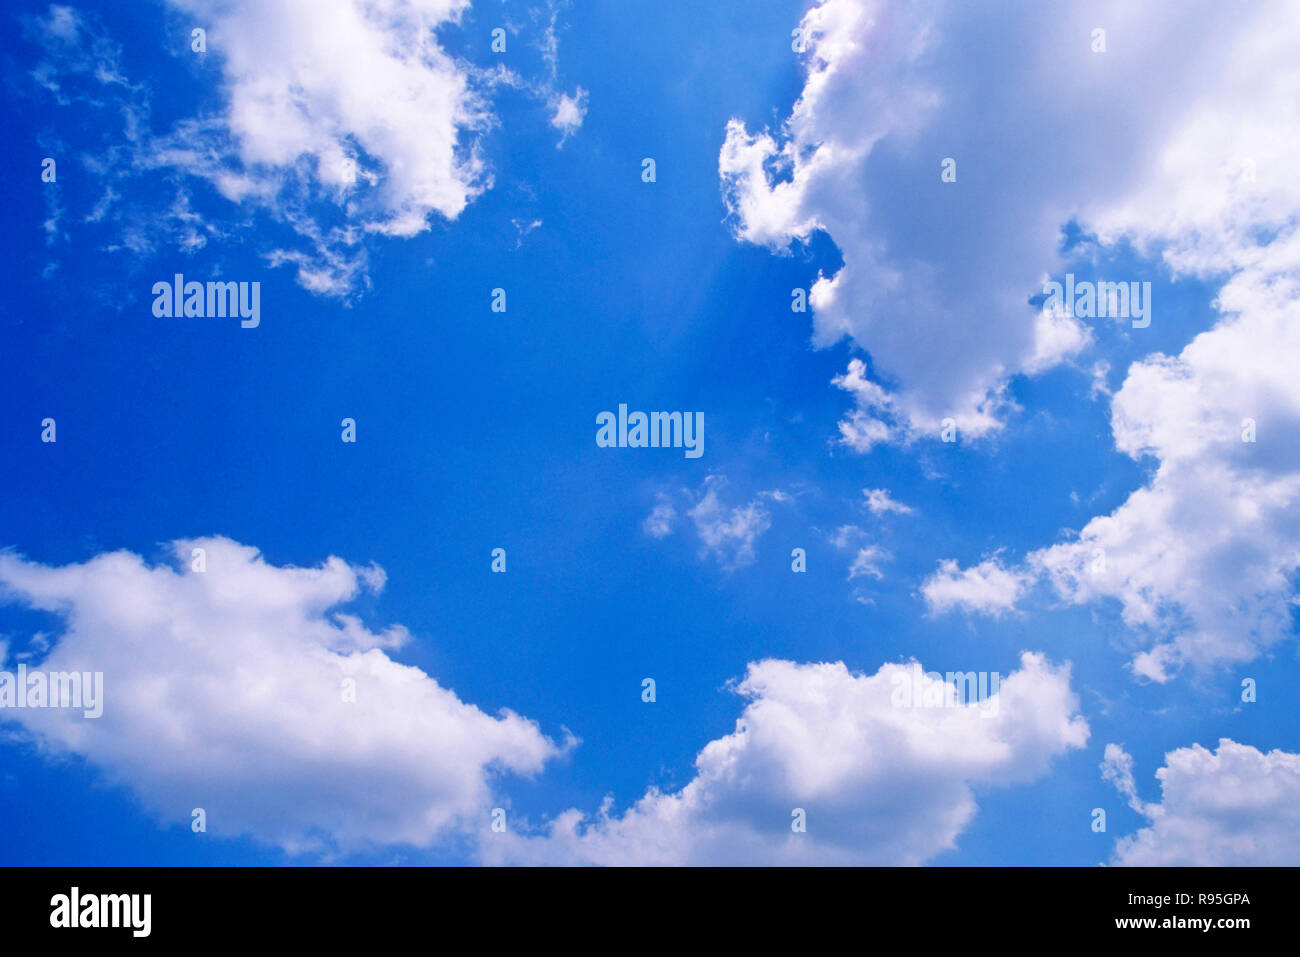 Cloud and sky - Stock Image